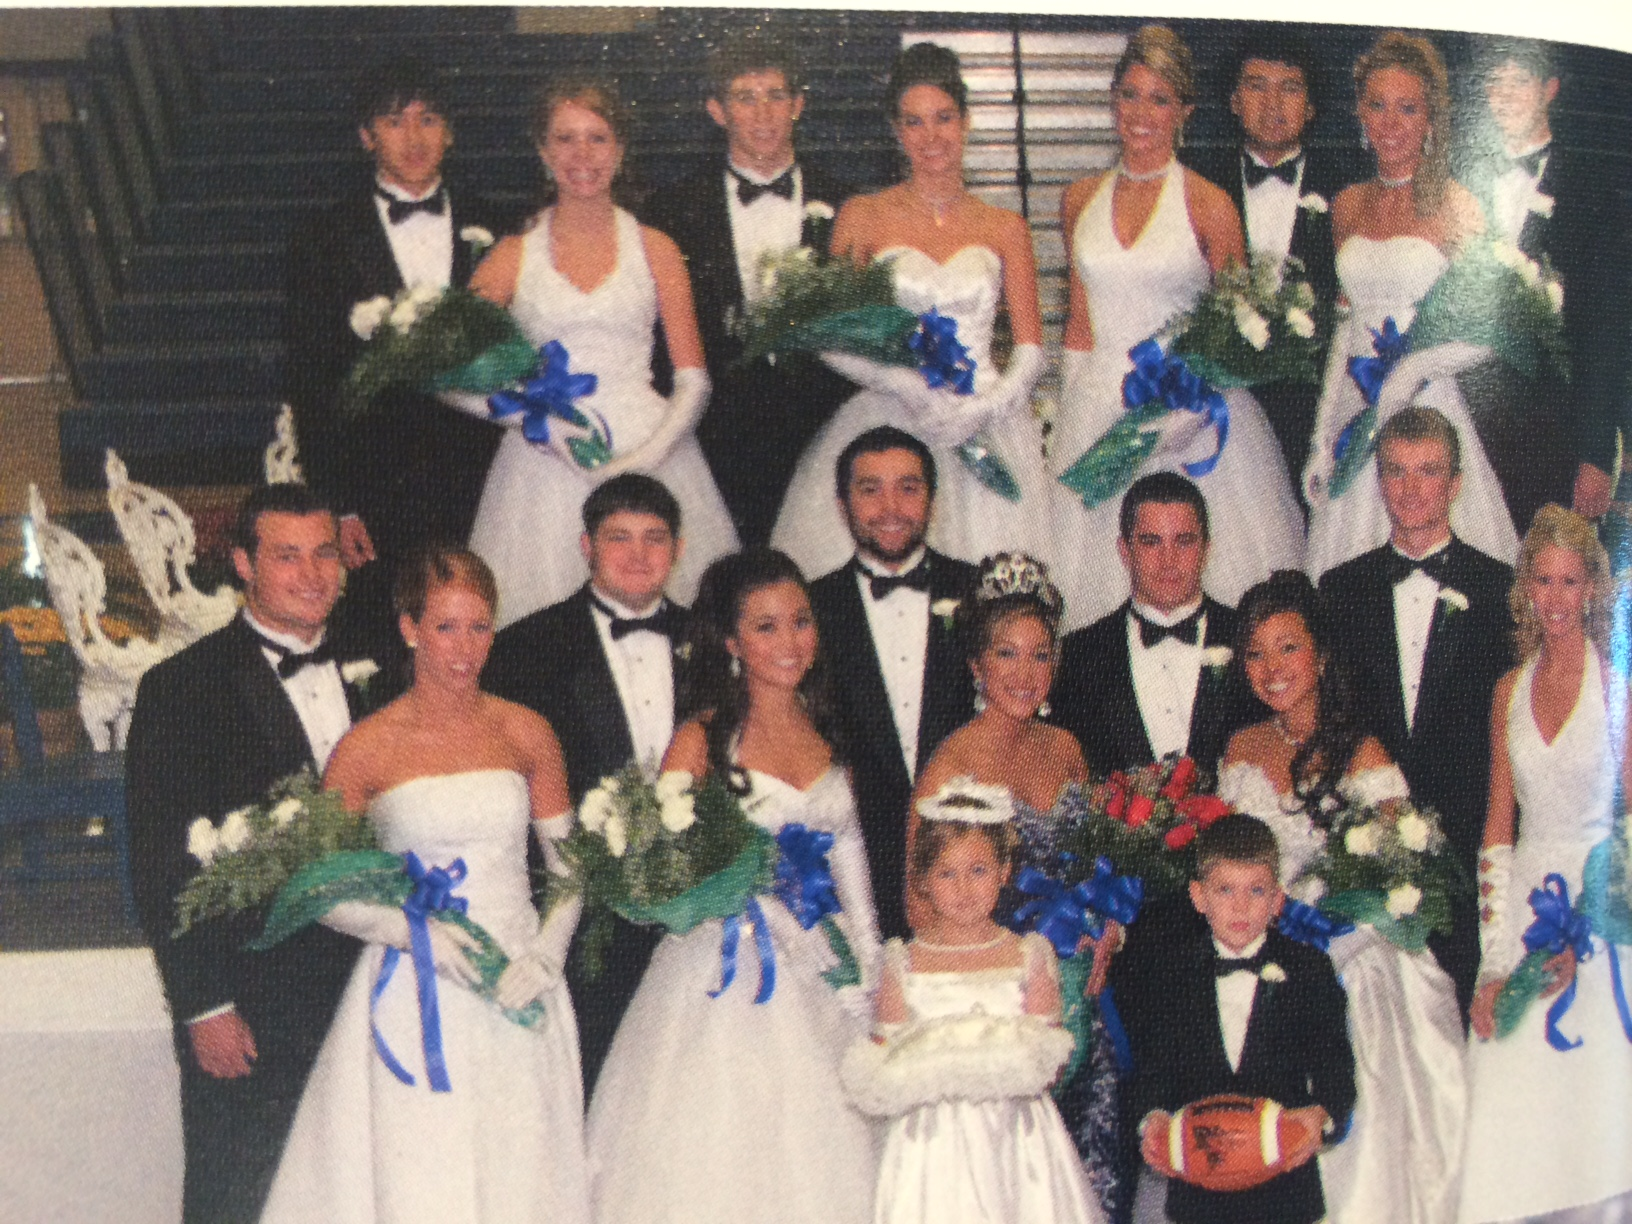 Christopher Freeman was part of homecoming royalty during his sophomore year at Rogers High School.